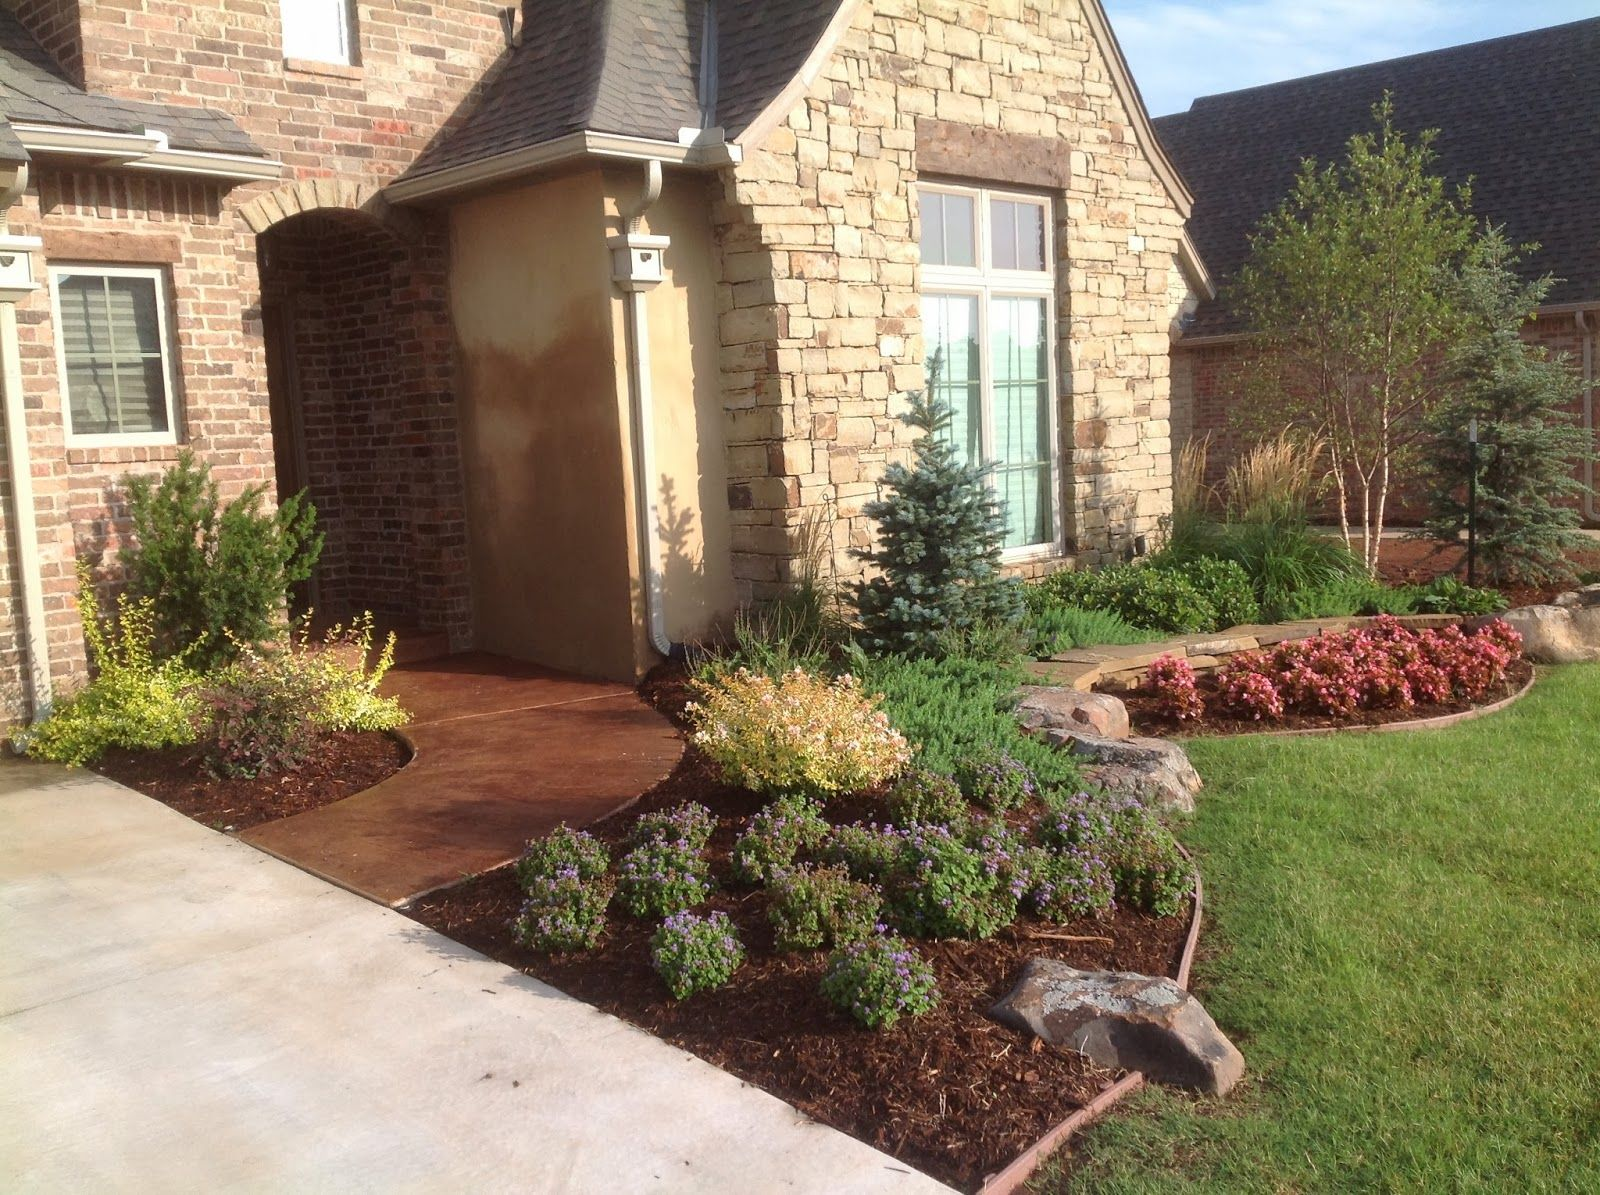 home and garden design trends for 2014 marketplace events - Garden Design Trends 2014